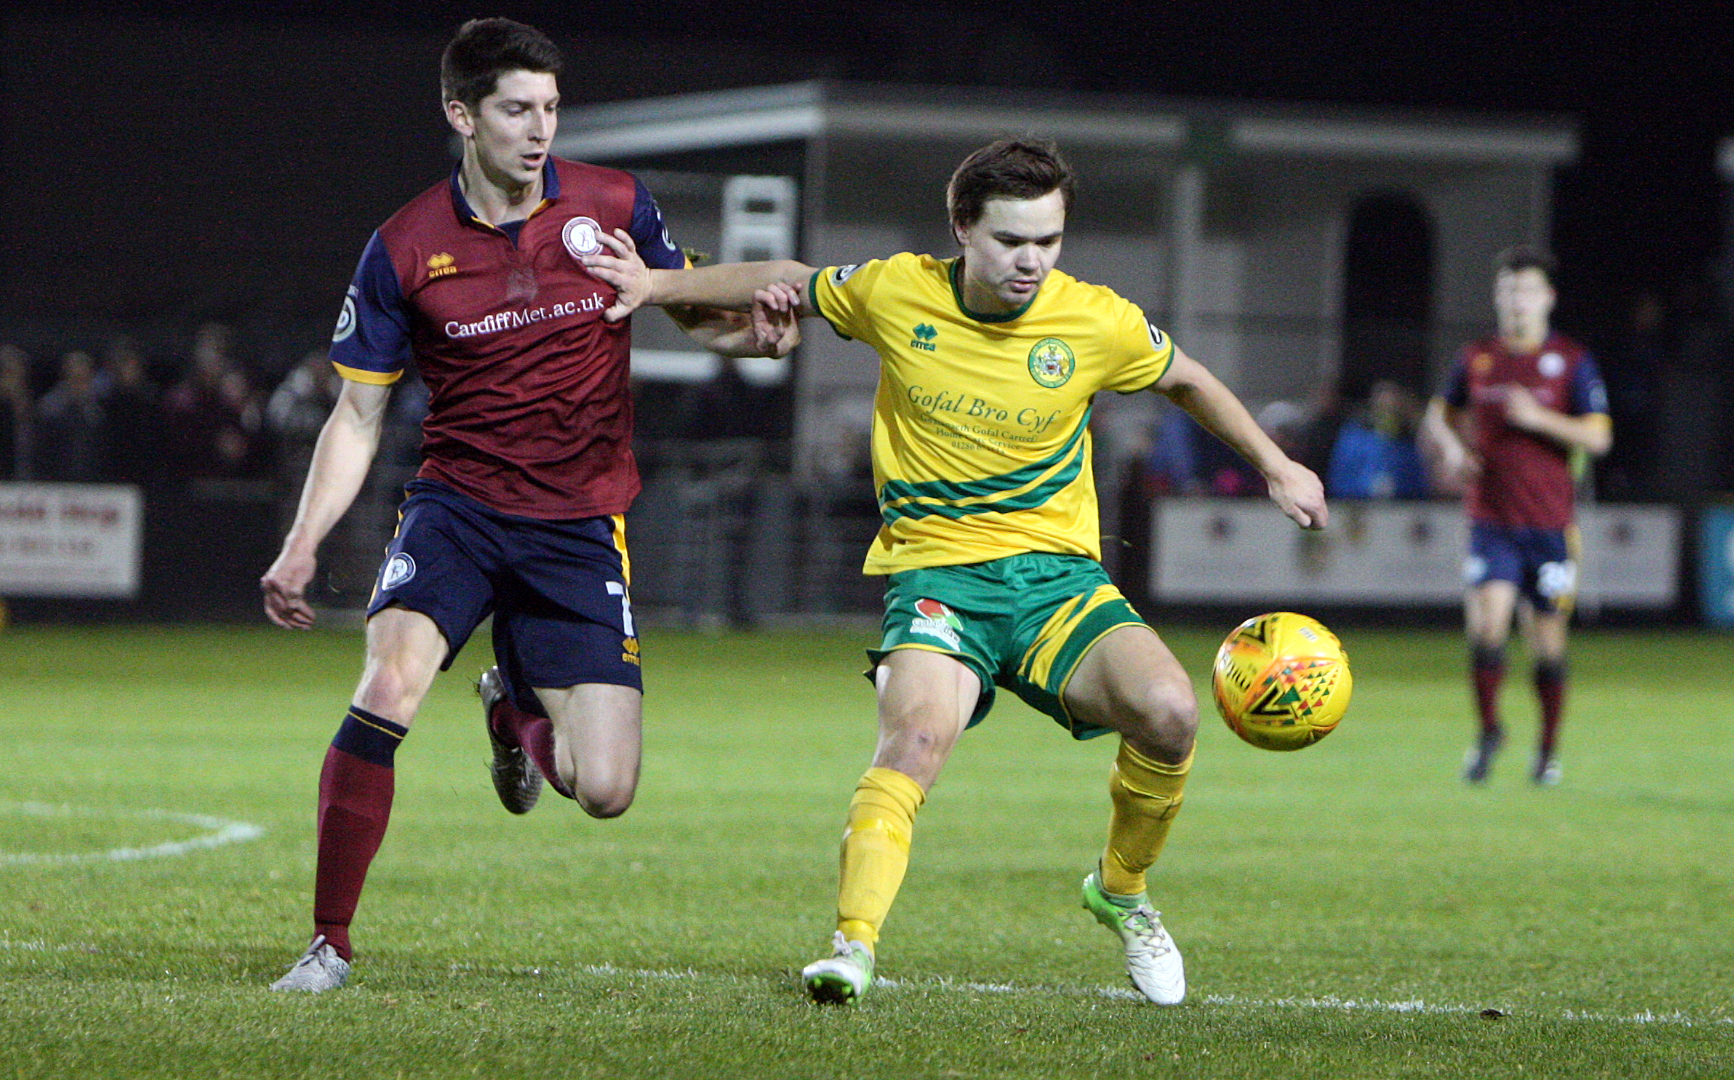 Noah Edwards has made a huge impression since signing for Caernarfon Town (Photo by Richard Birch)